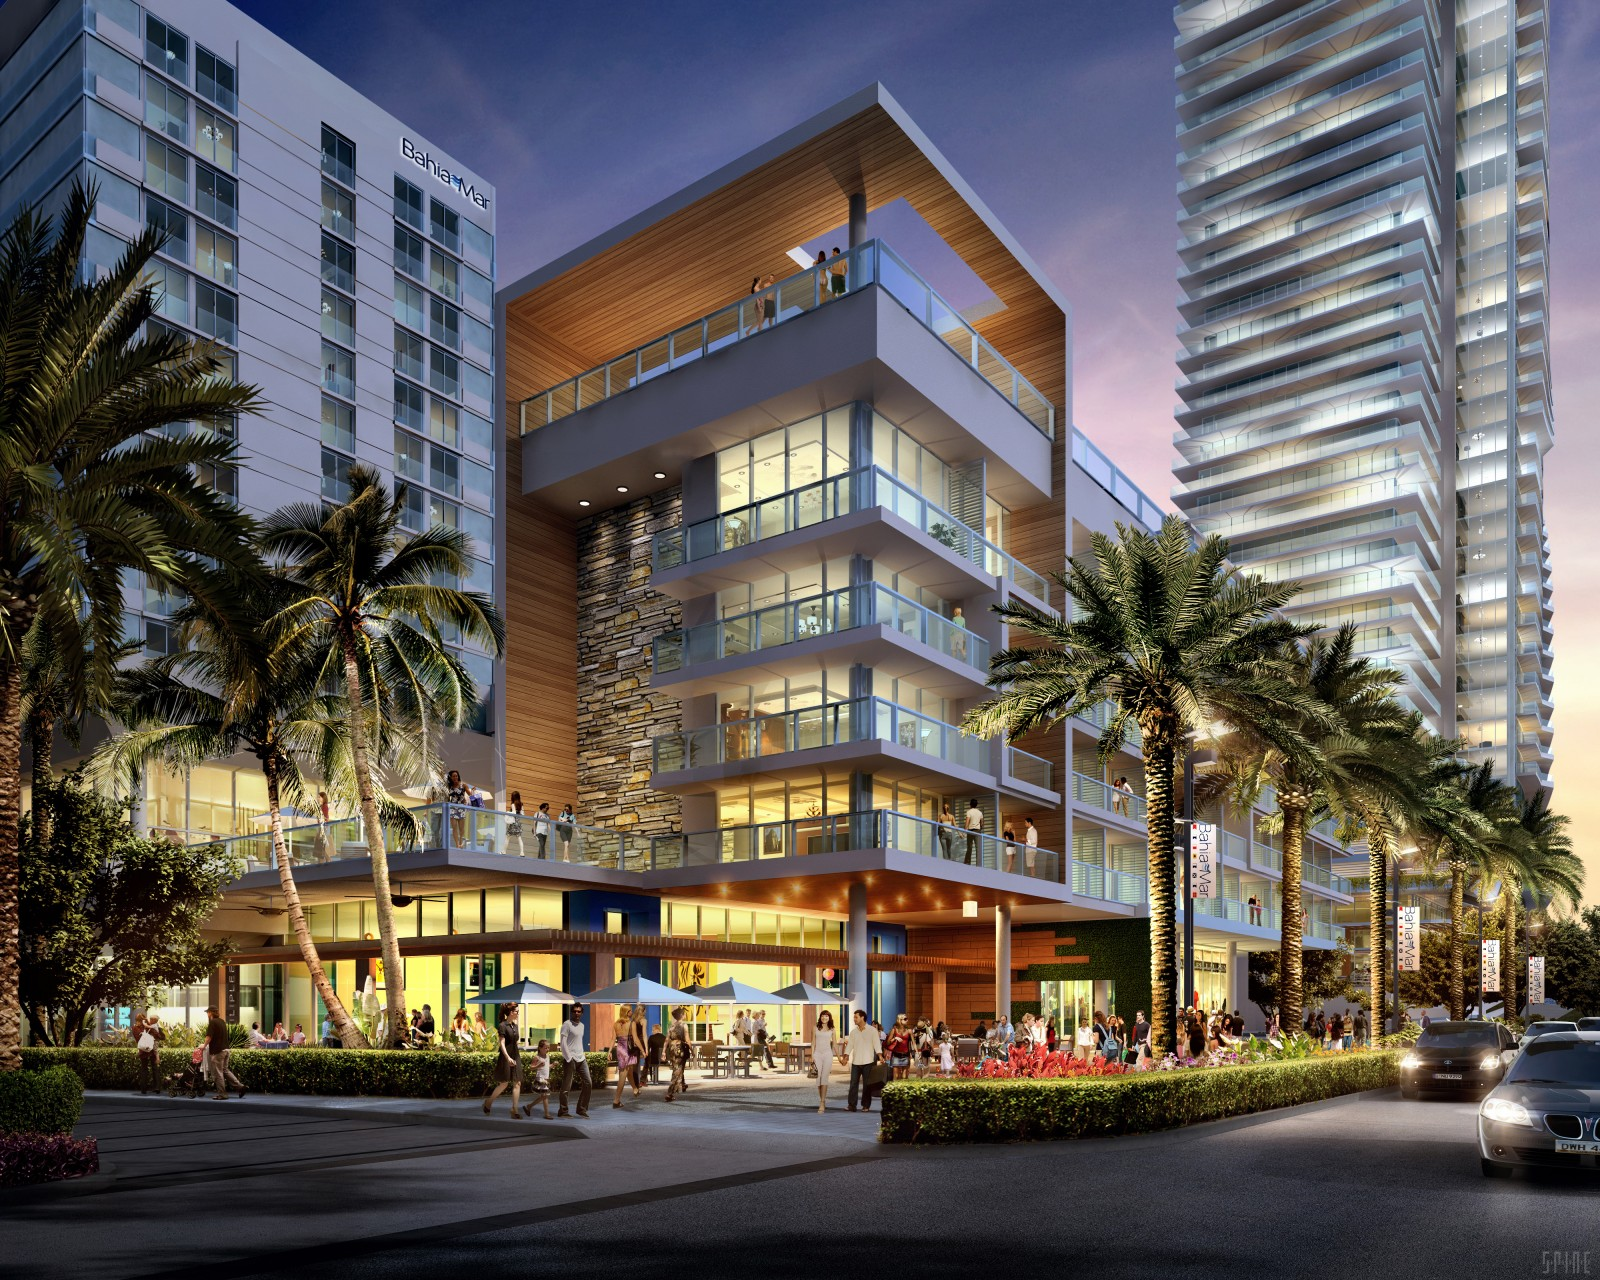 Drawings for proposed redevelopment of Bahia Mar.